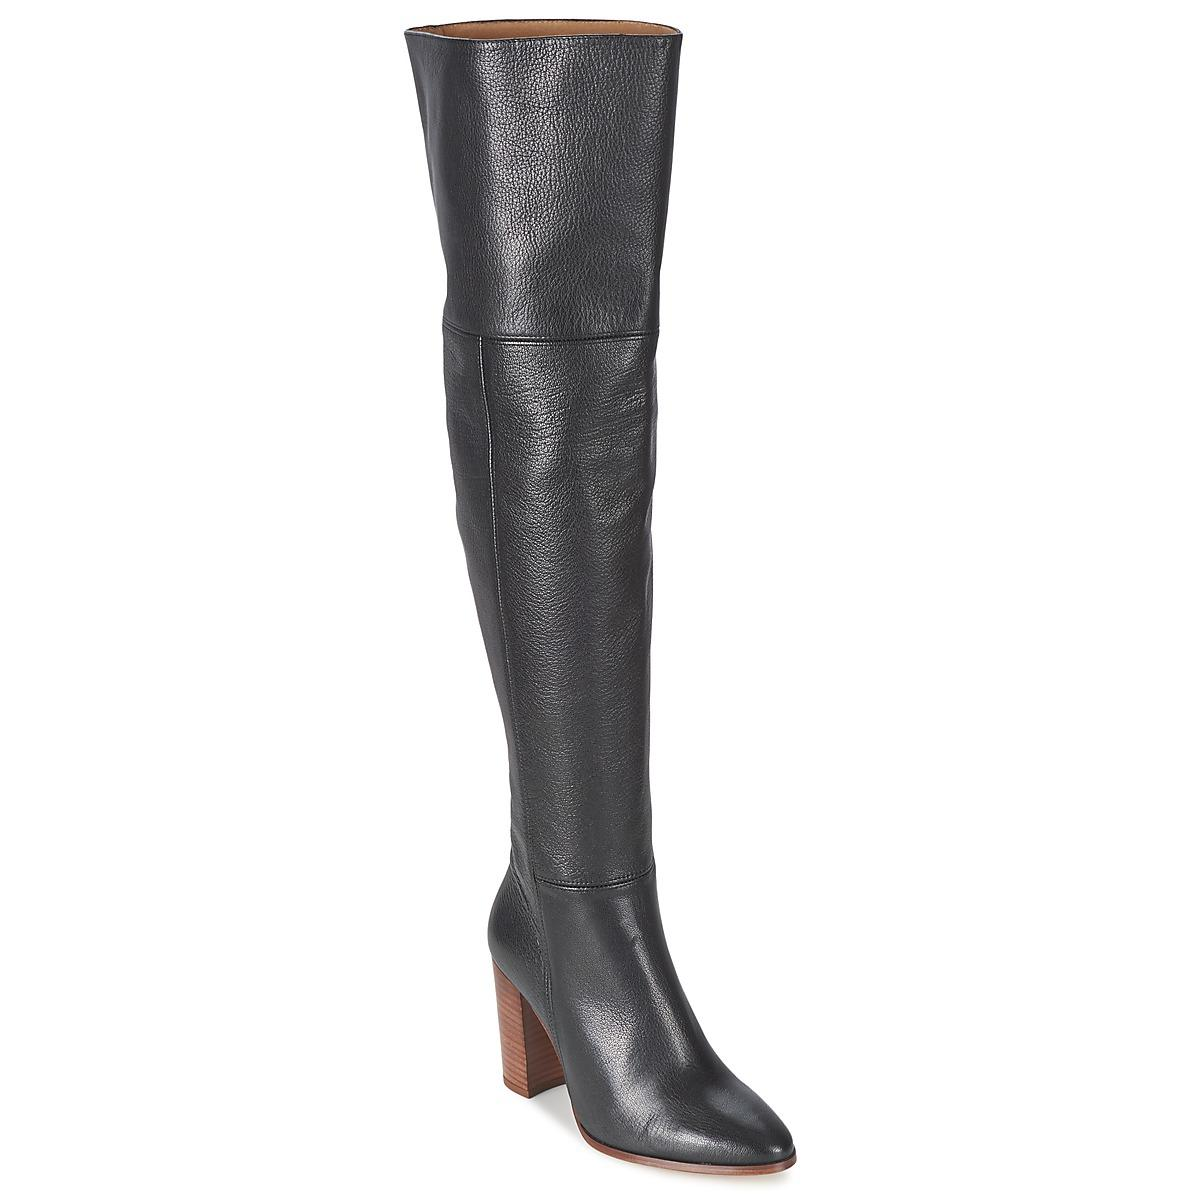 Fericelli HOULANE women's High Boots in Buy Cheap Affordable Get To Buy Sale Online Outlet Finishline u67I4